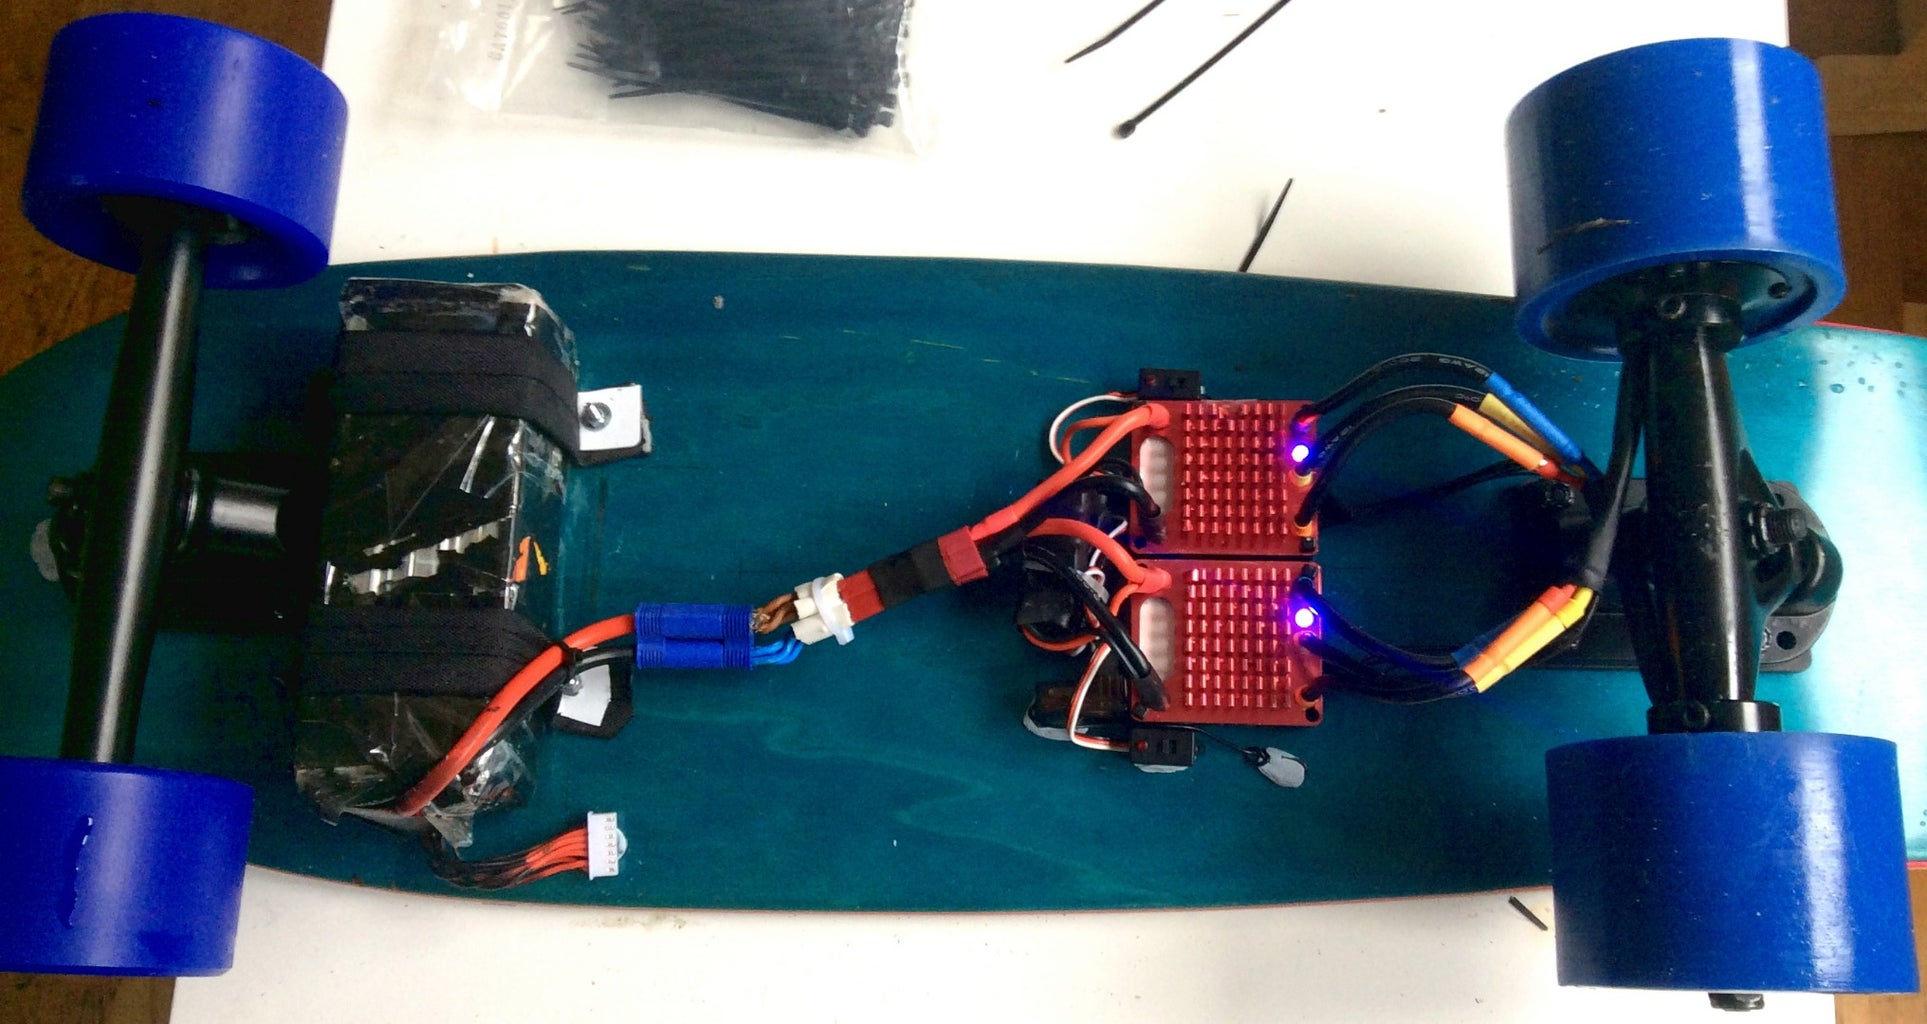 Mounting the Electronics to the Board